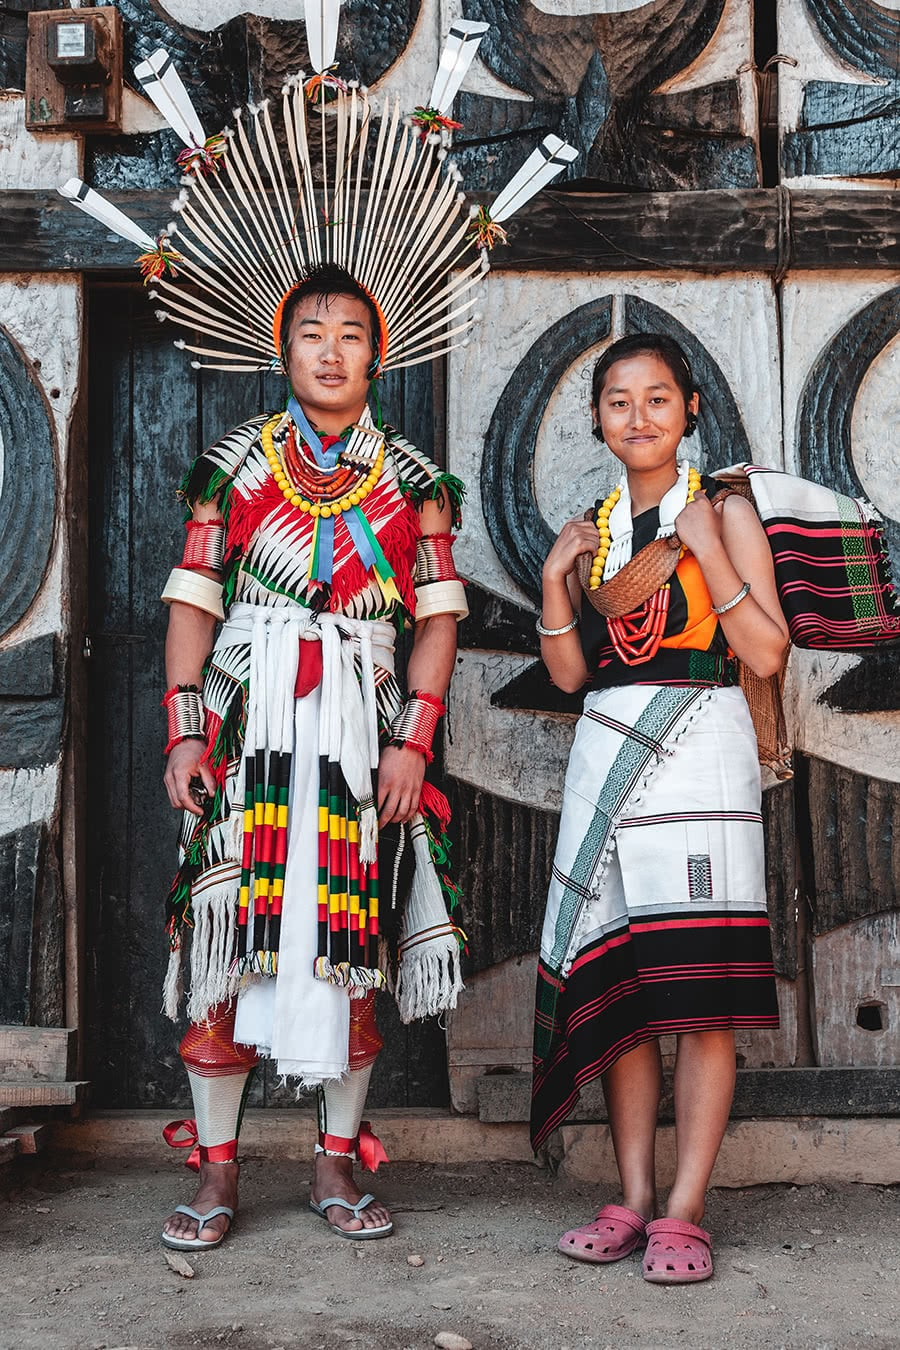 A man from the Angami tribe in Nagaland displays his full traditional attire at his home in Kohima